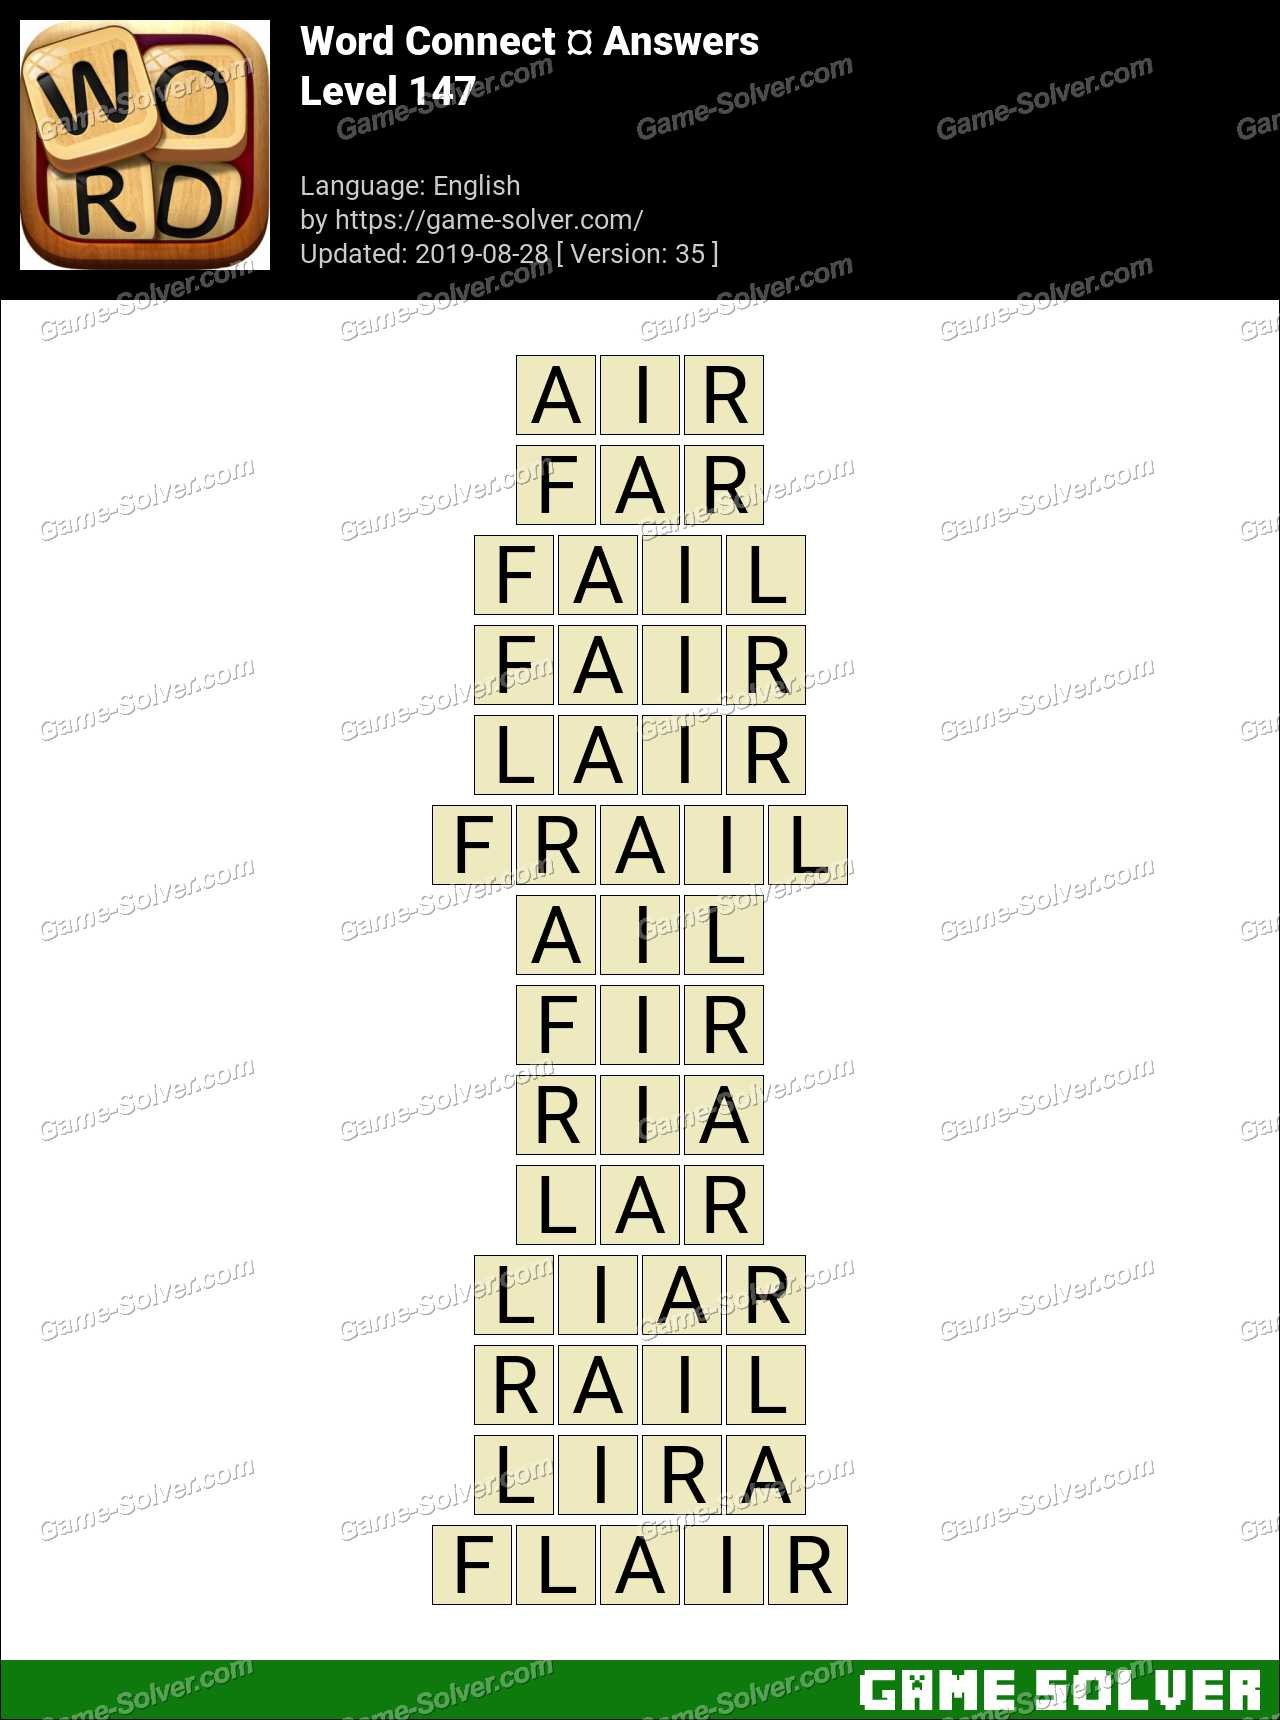 Word Connect Level 147 Answers